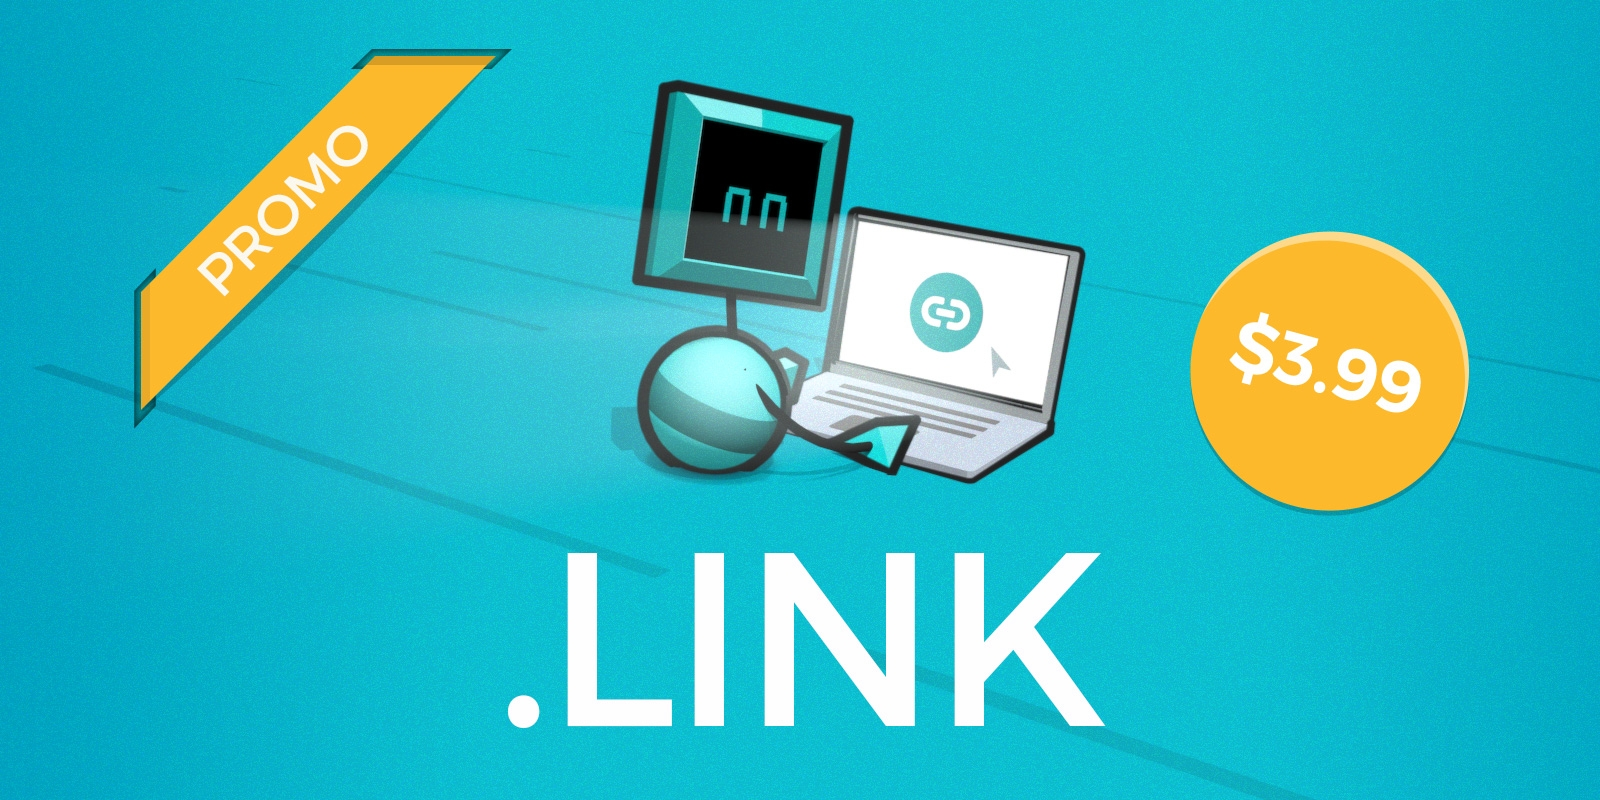 Three TLDs, .click, .link, .lol, for $3.99